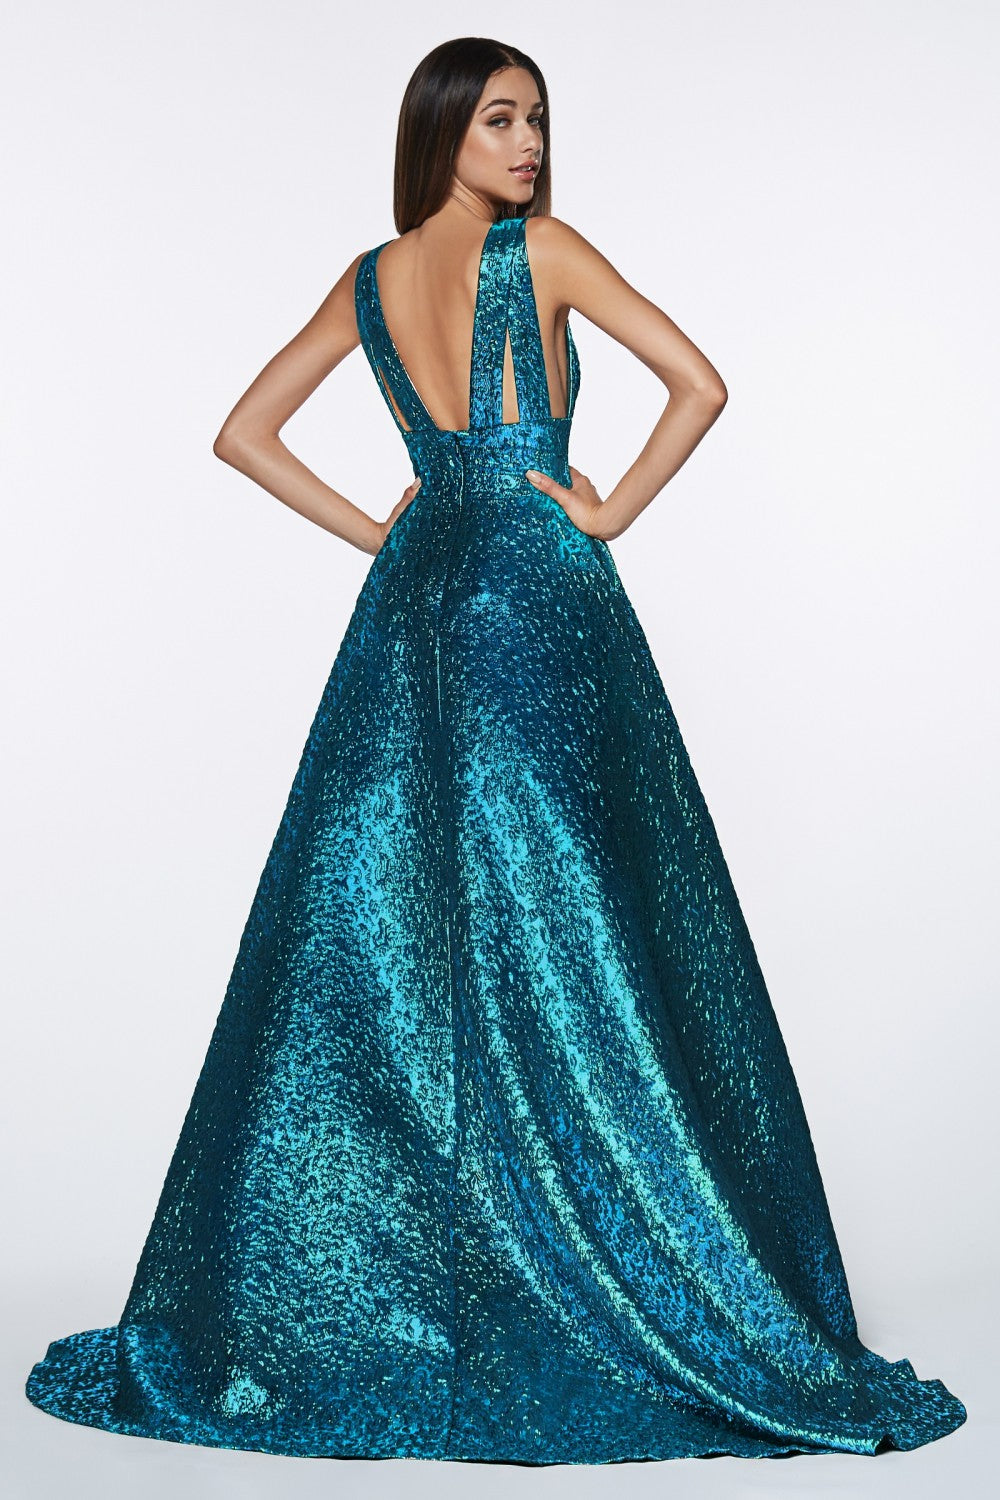 Metallic Brocade Ball Gown With Deep V-Neckline And Open Sides